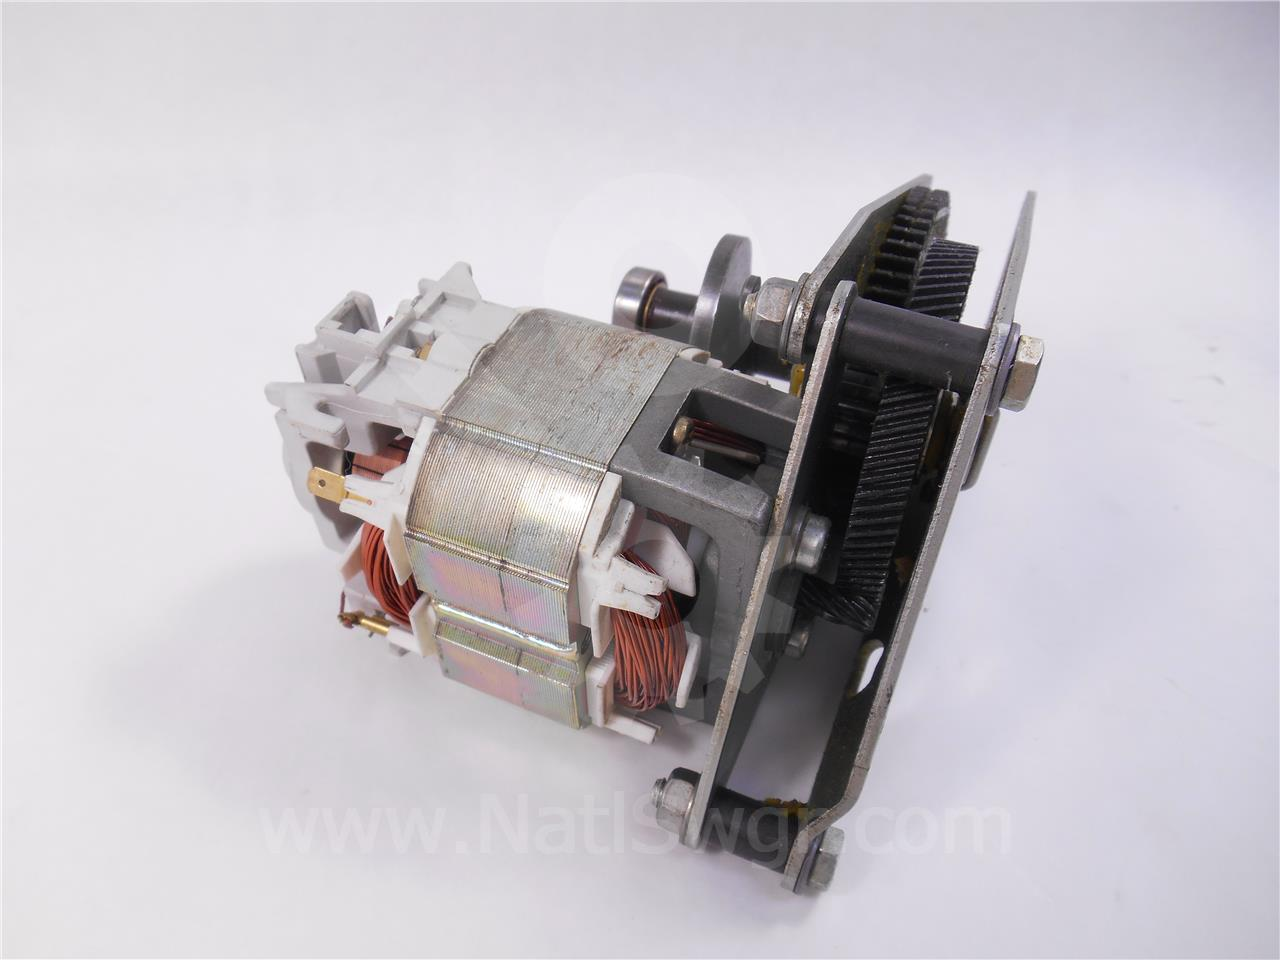 46040-476-51 Square D 120VAC/DC CHARGE MOTOR ASSEMBLY FOR VR VAD-5